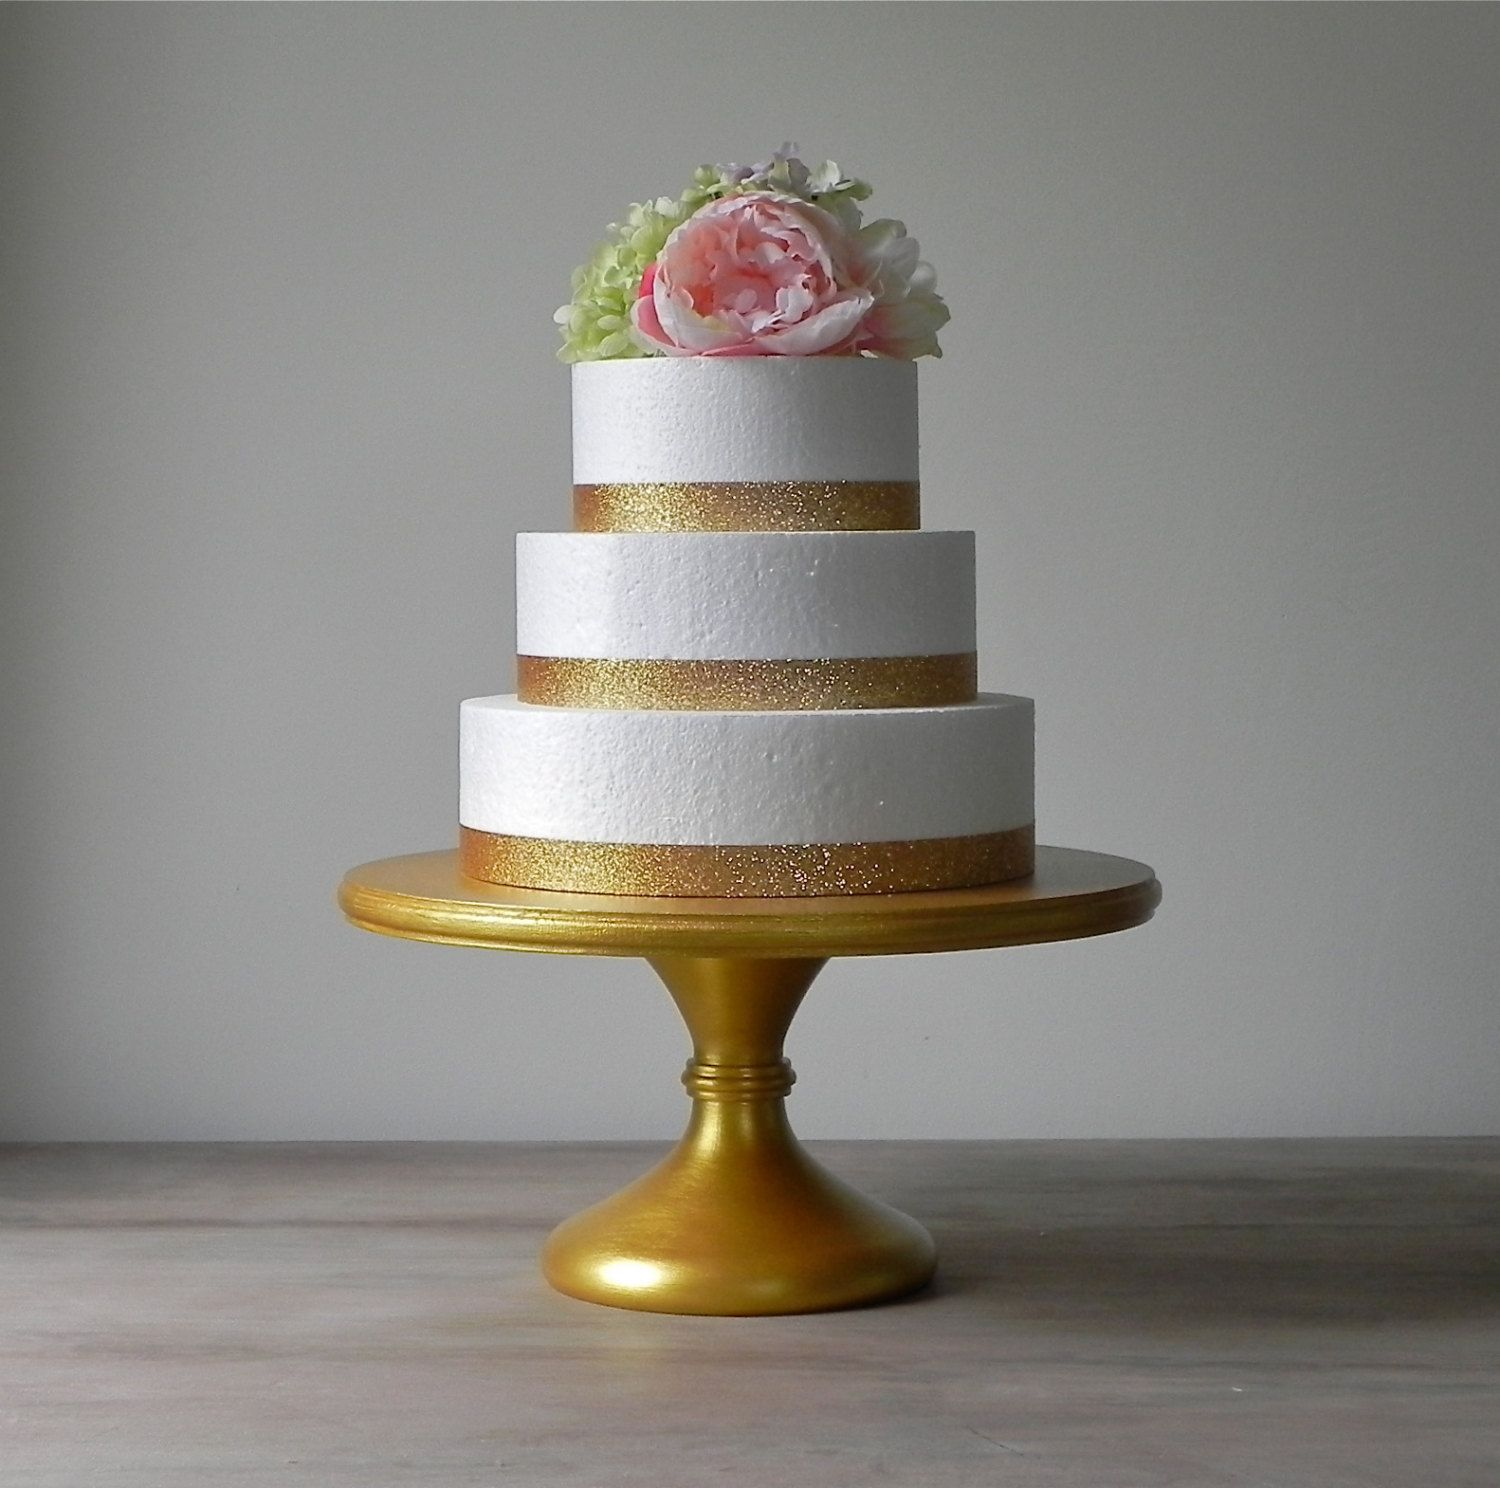 decorative cake stands for wedding cakes gold cake stand 16 quot wedding cake stand pedestal cake stand 13435